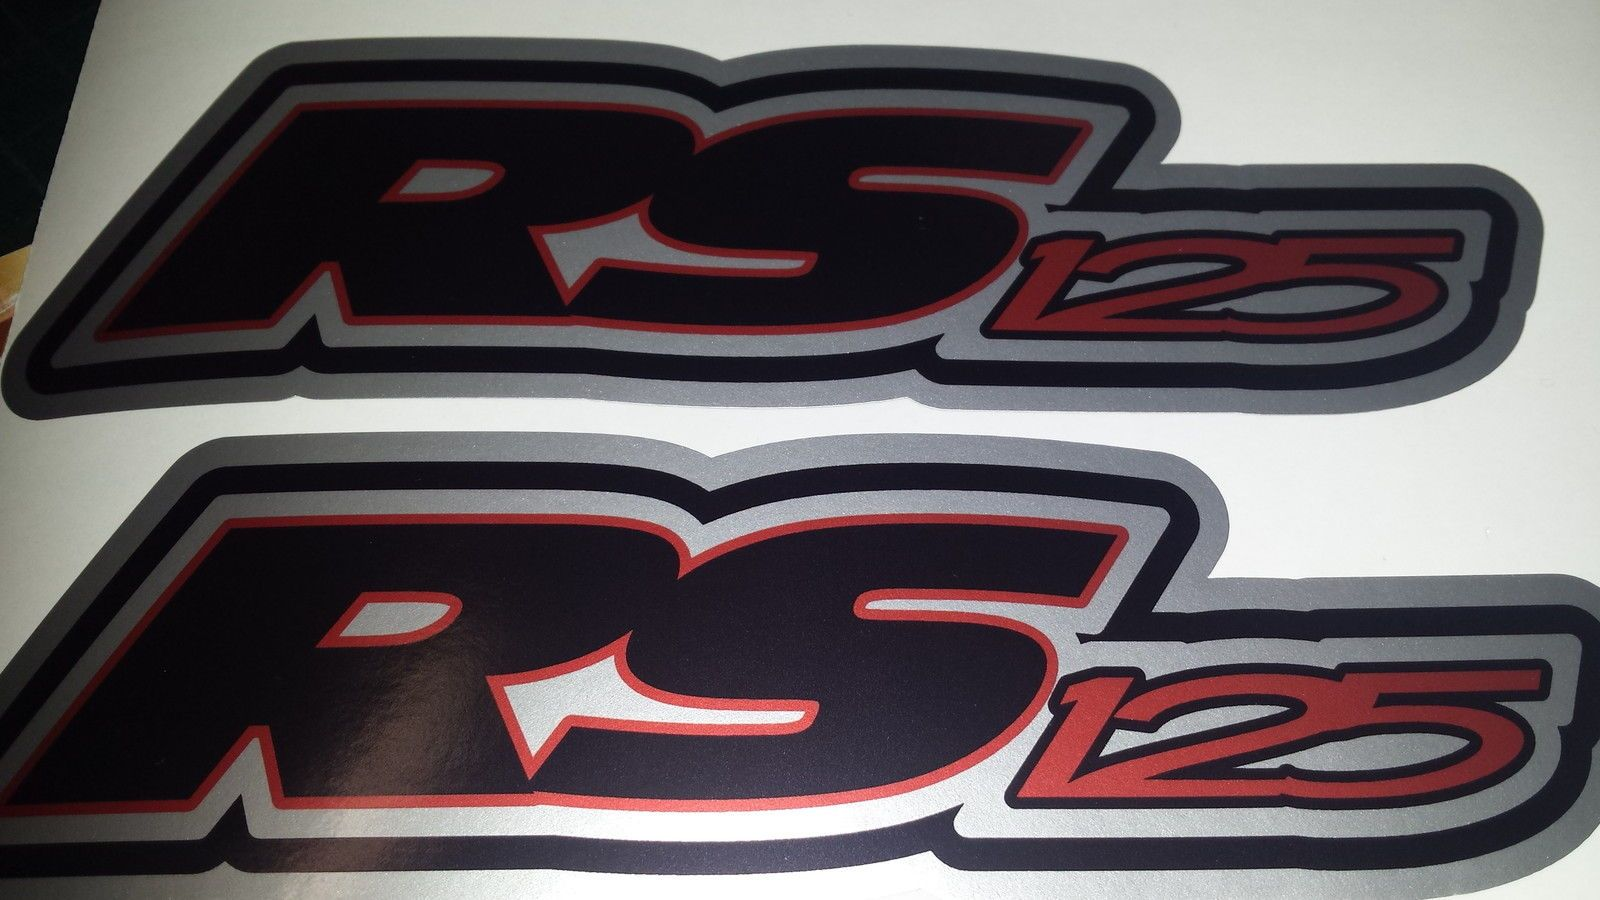 Aprilia rs125 decals stickers 3colour black red silver rs 125 racing ip 9 piece